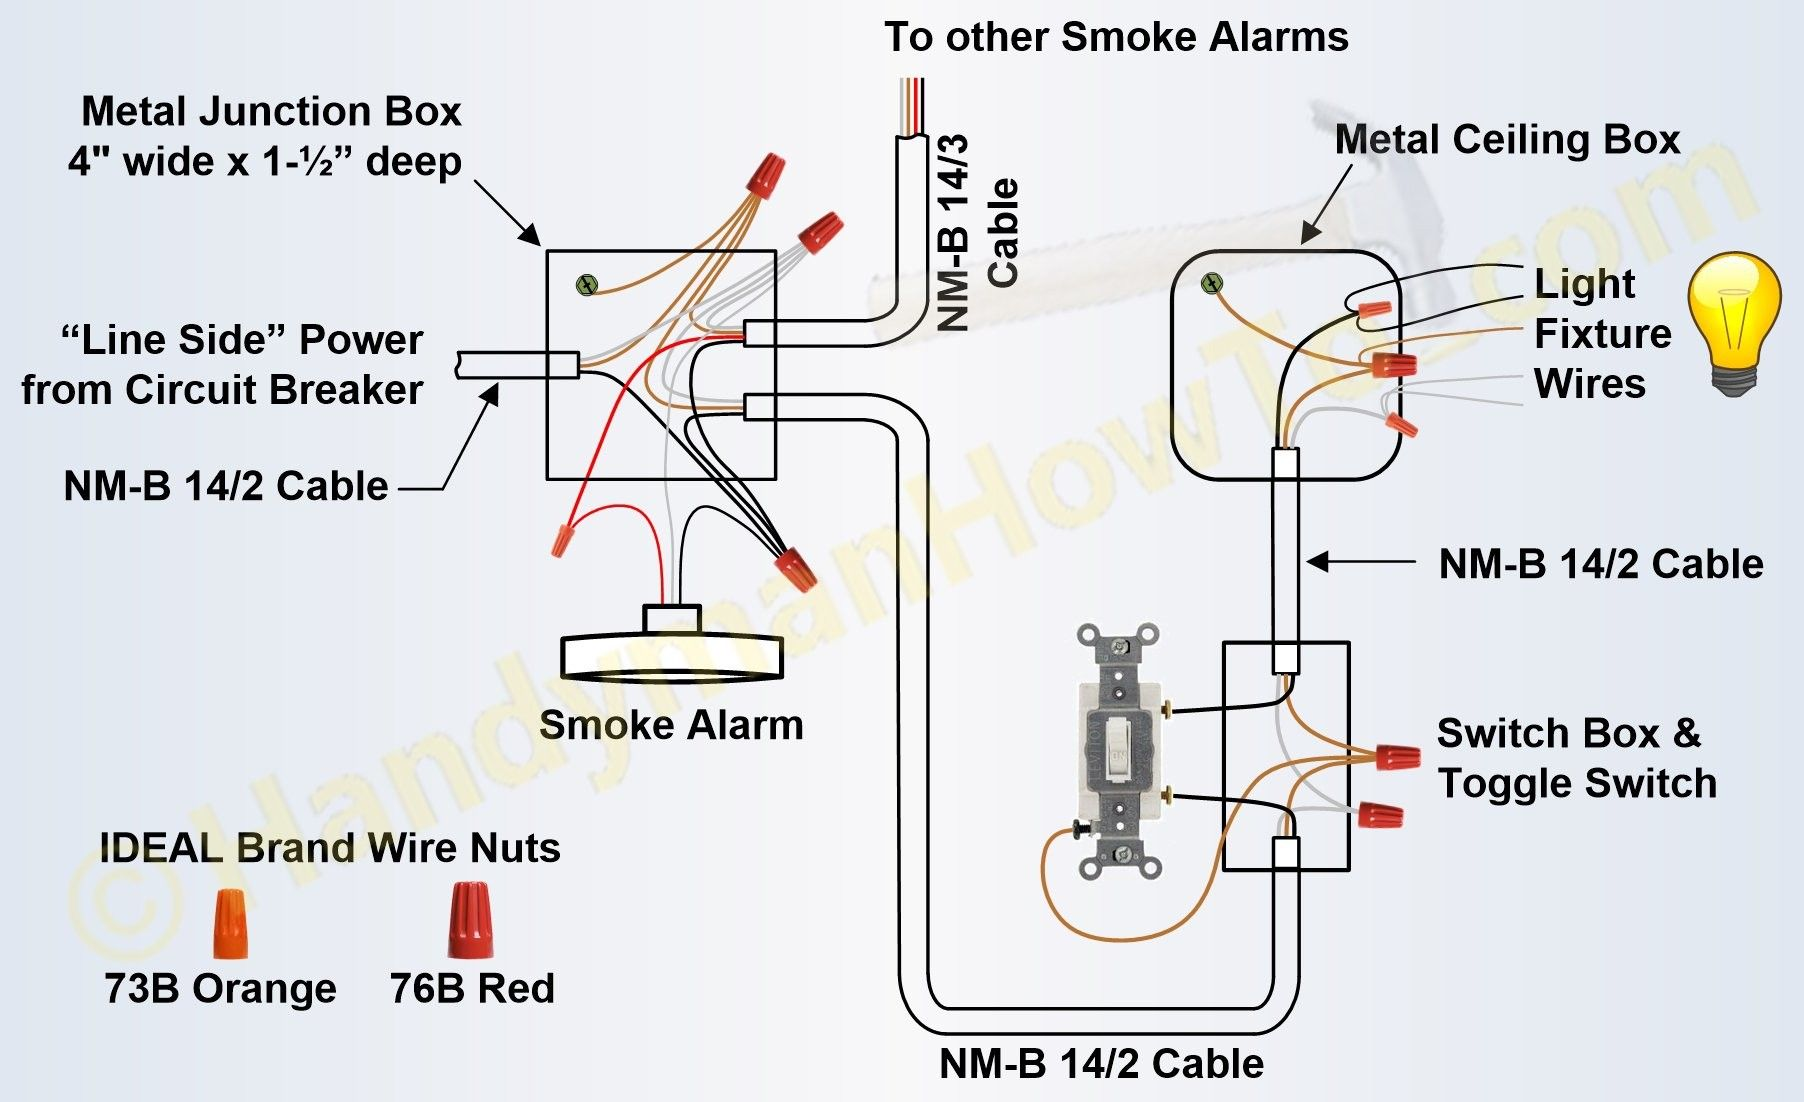 Wiring Diagram For Smoke Detectors In Series Gain 04alucard